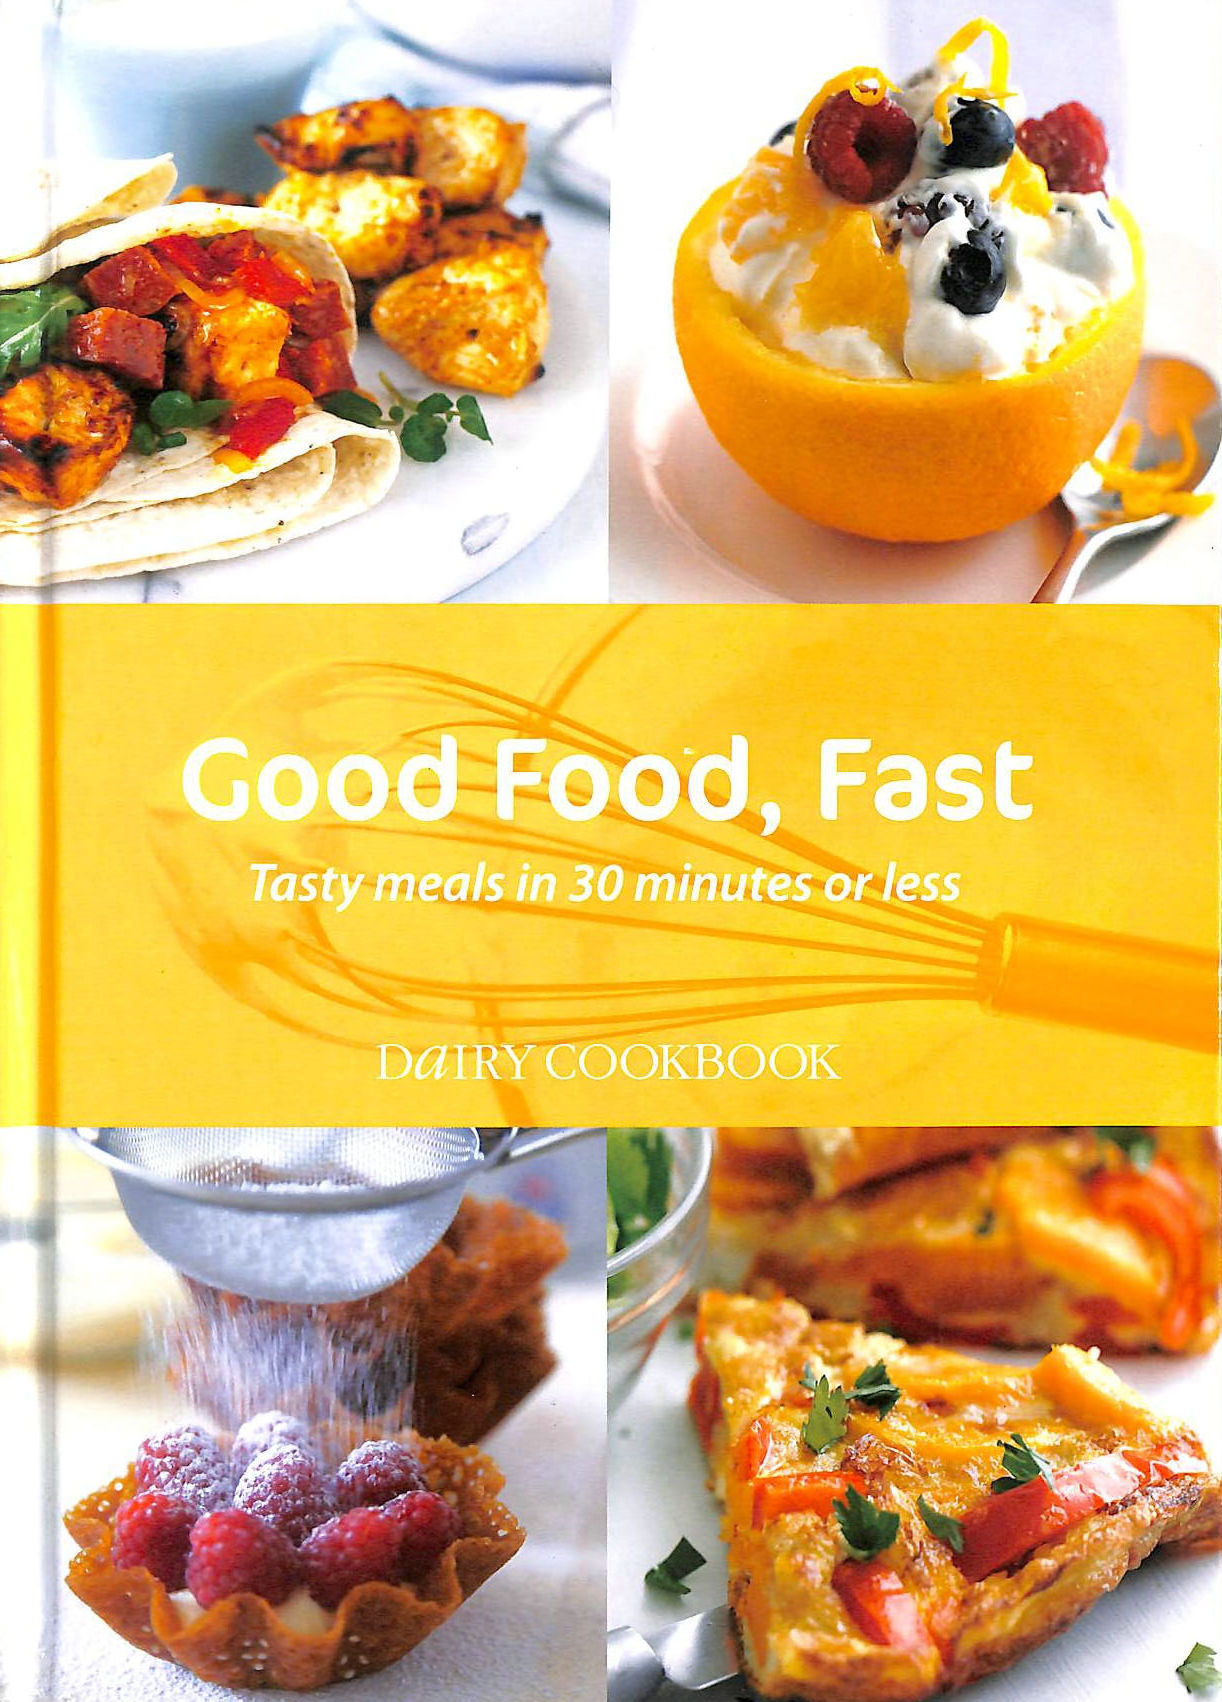 Image for Good Food, Fast: Dairy Cookbook